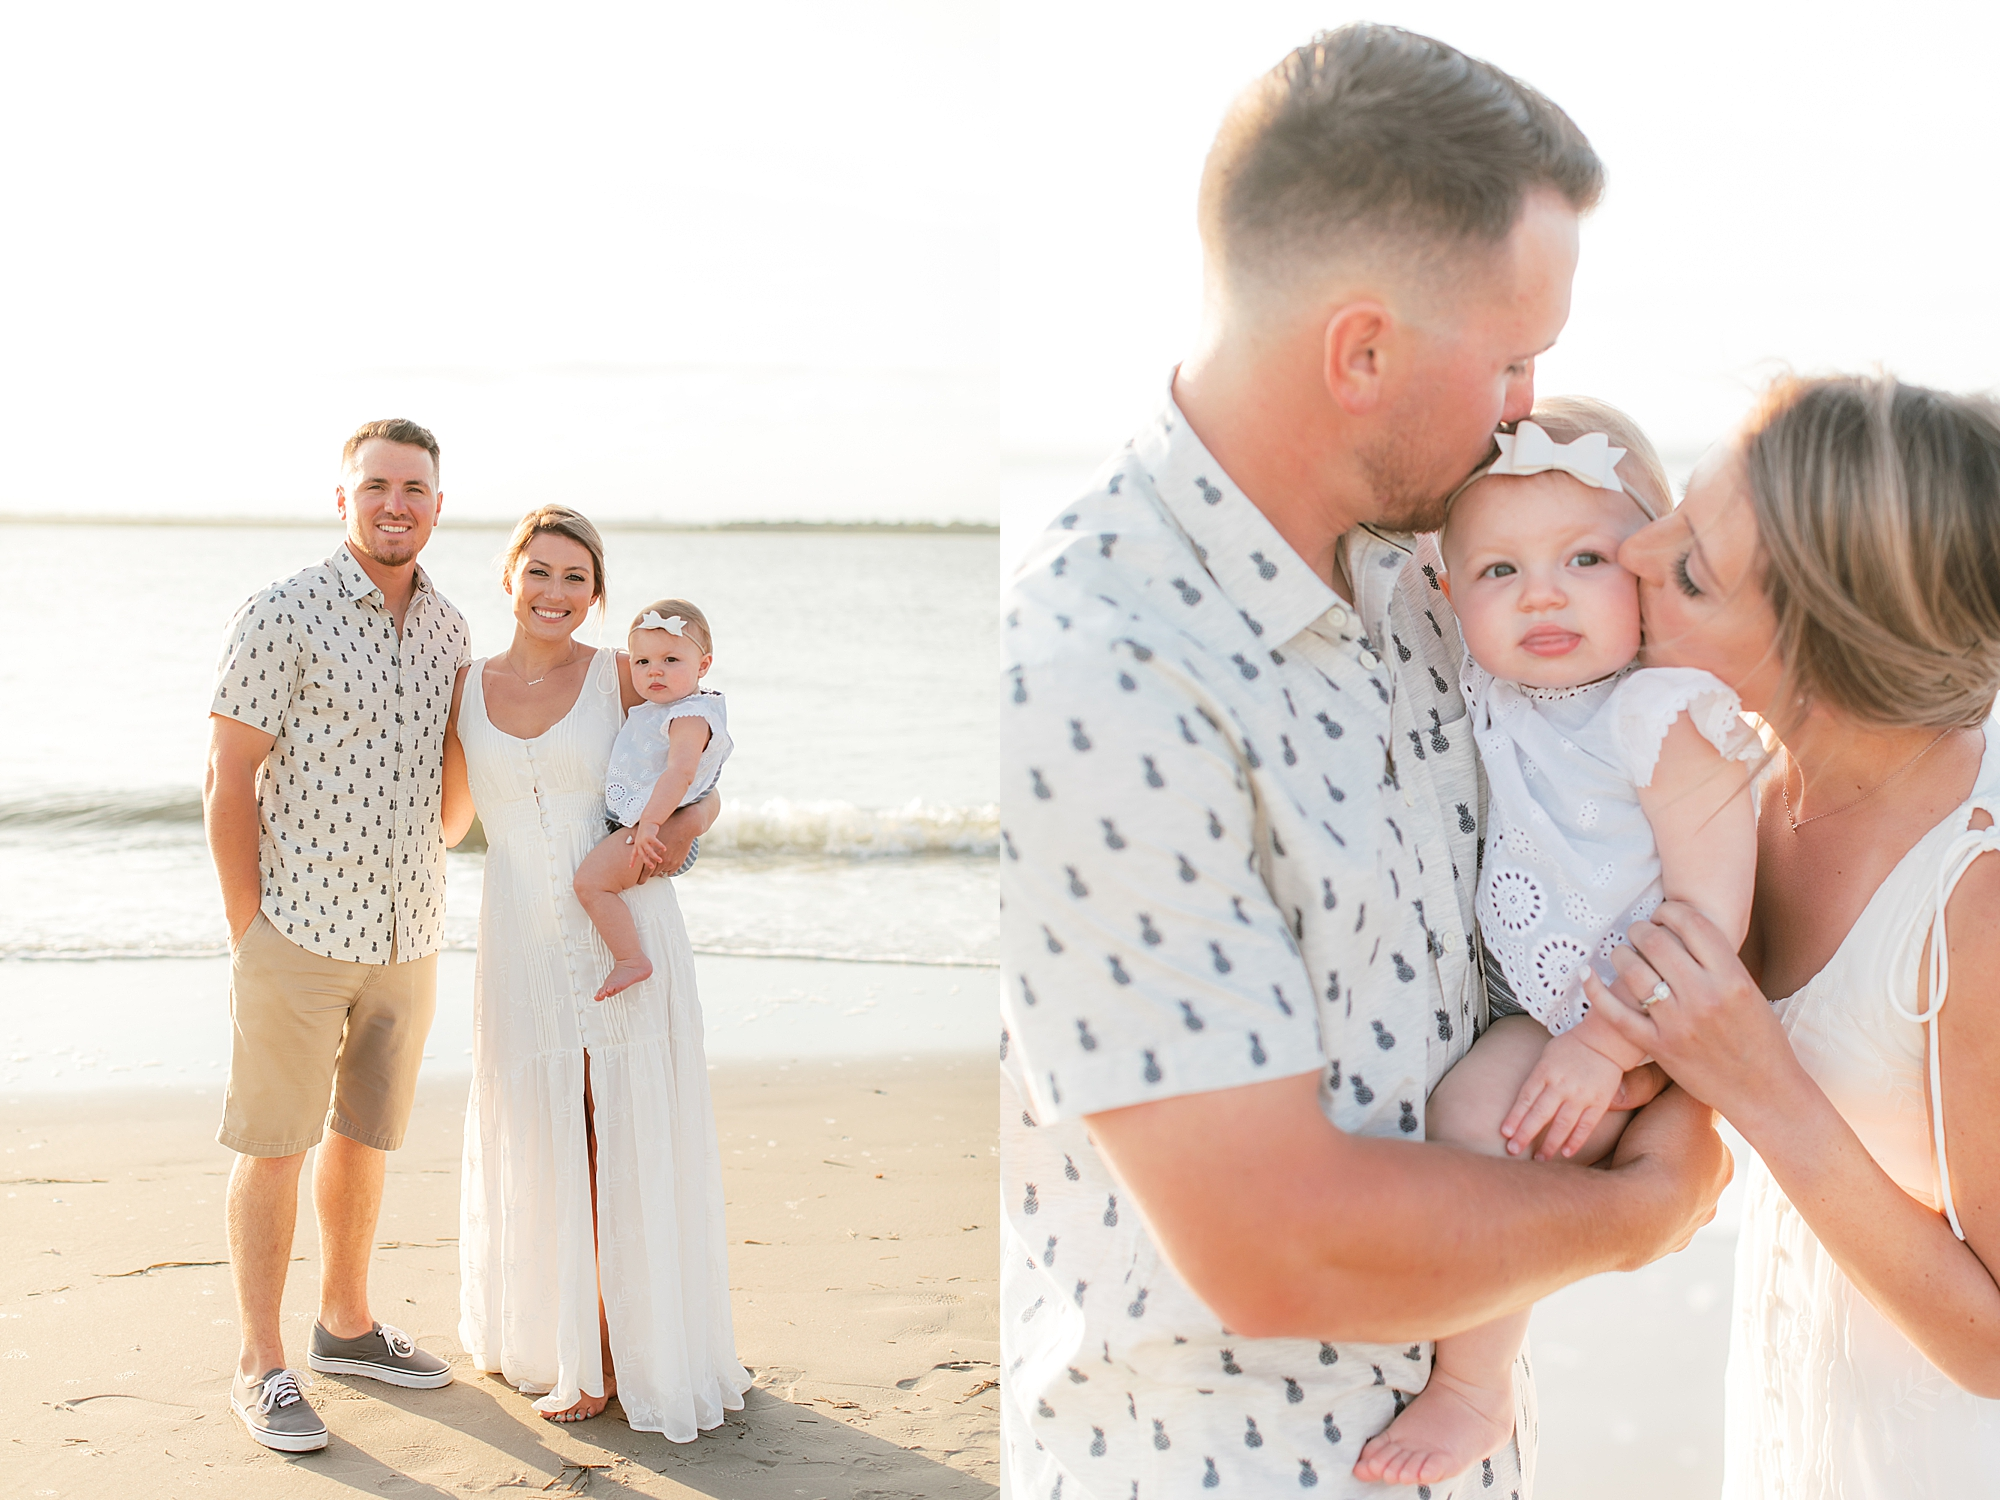 Beach Family Photography OCNJ Ocean City NJ by Magdalena Studios 0002 1